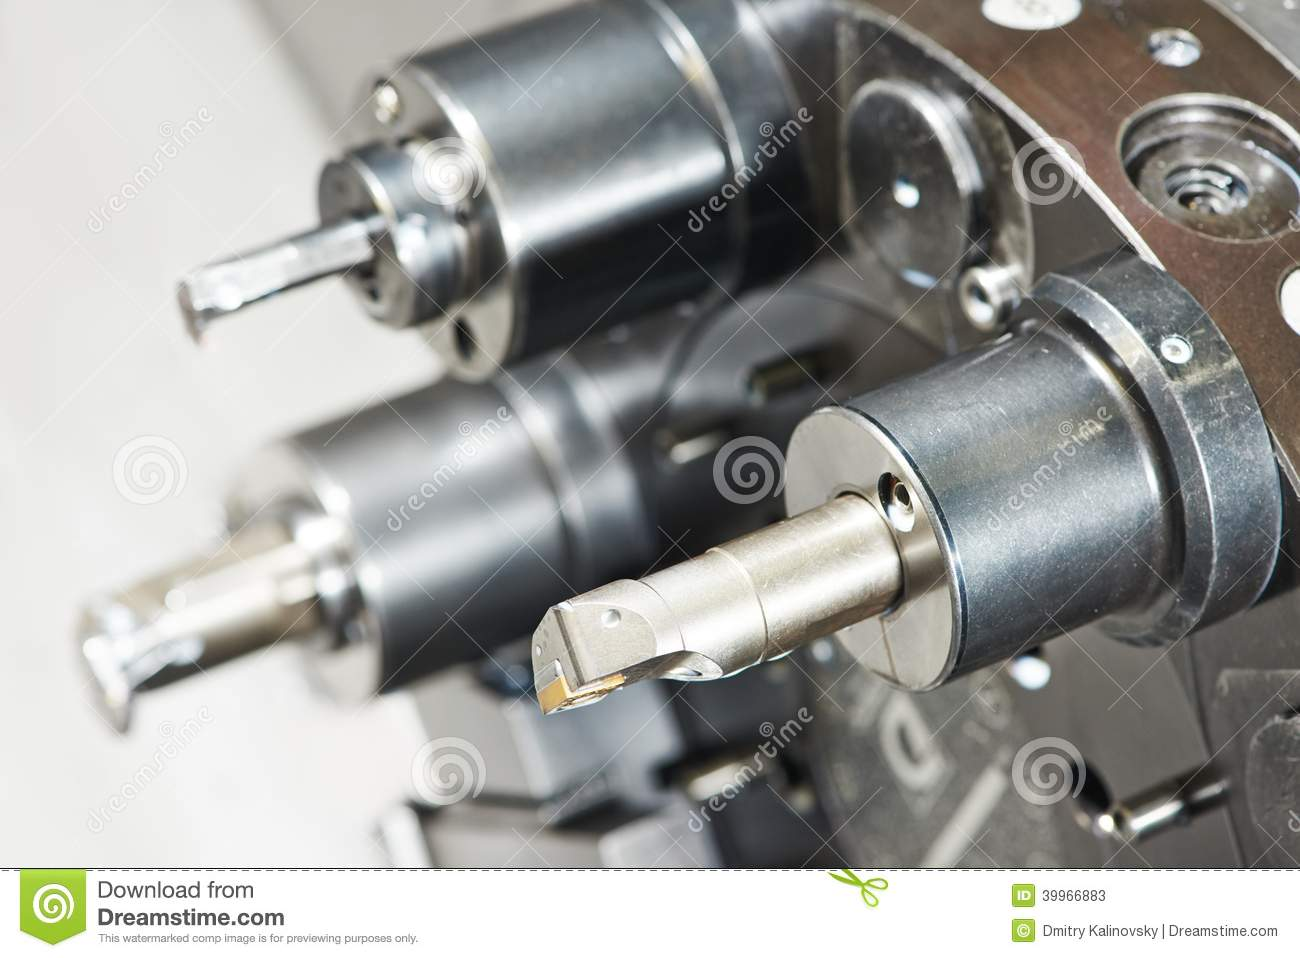 Industrial metal work bore cutting tool on automated lathe.